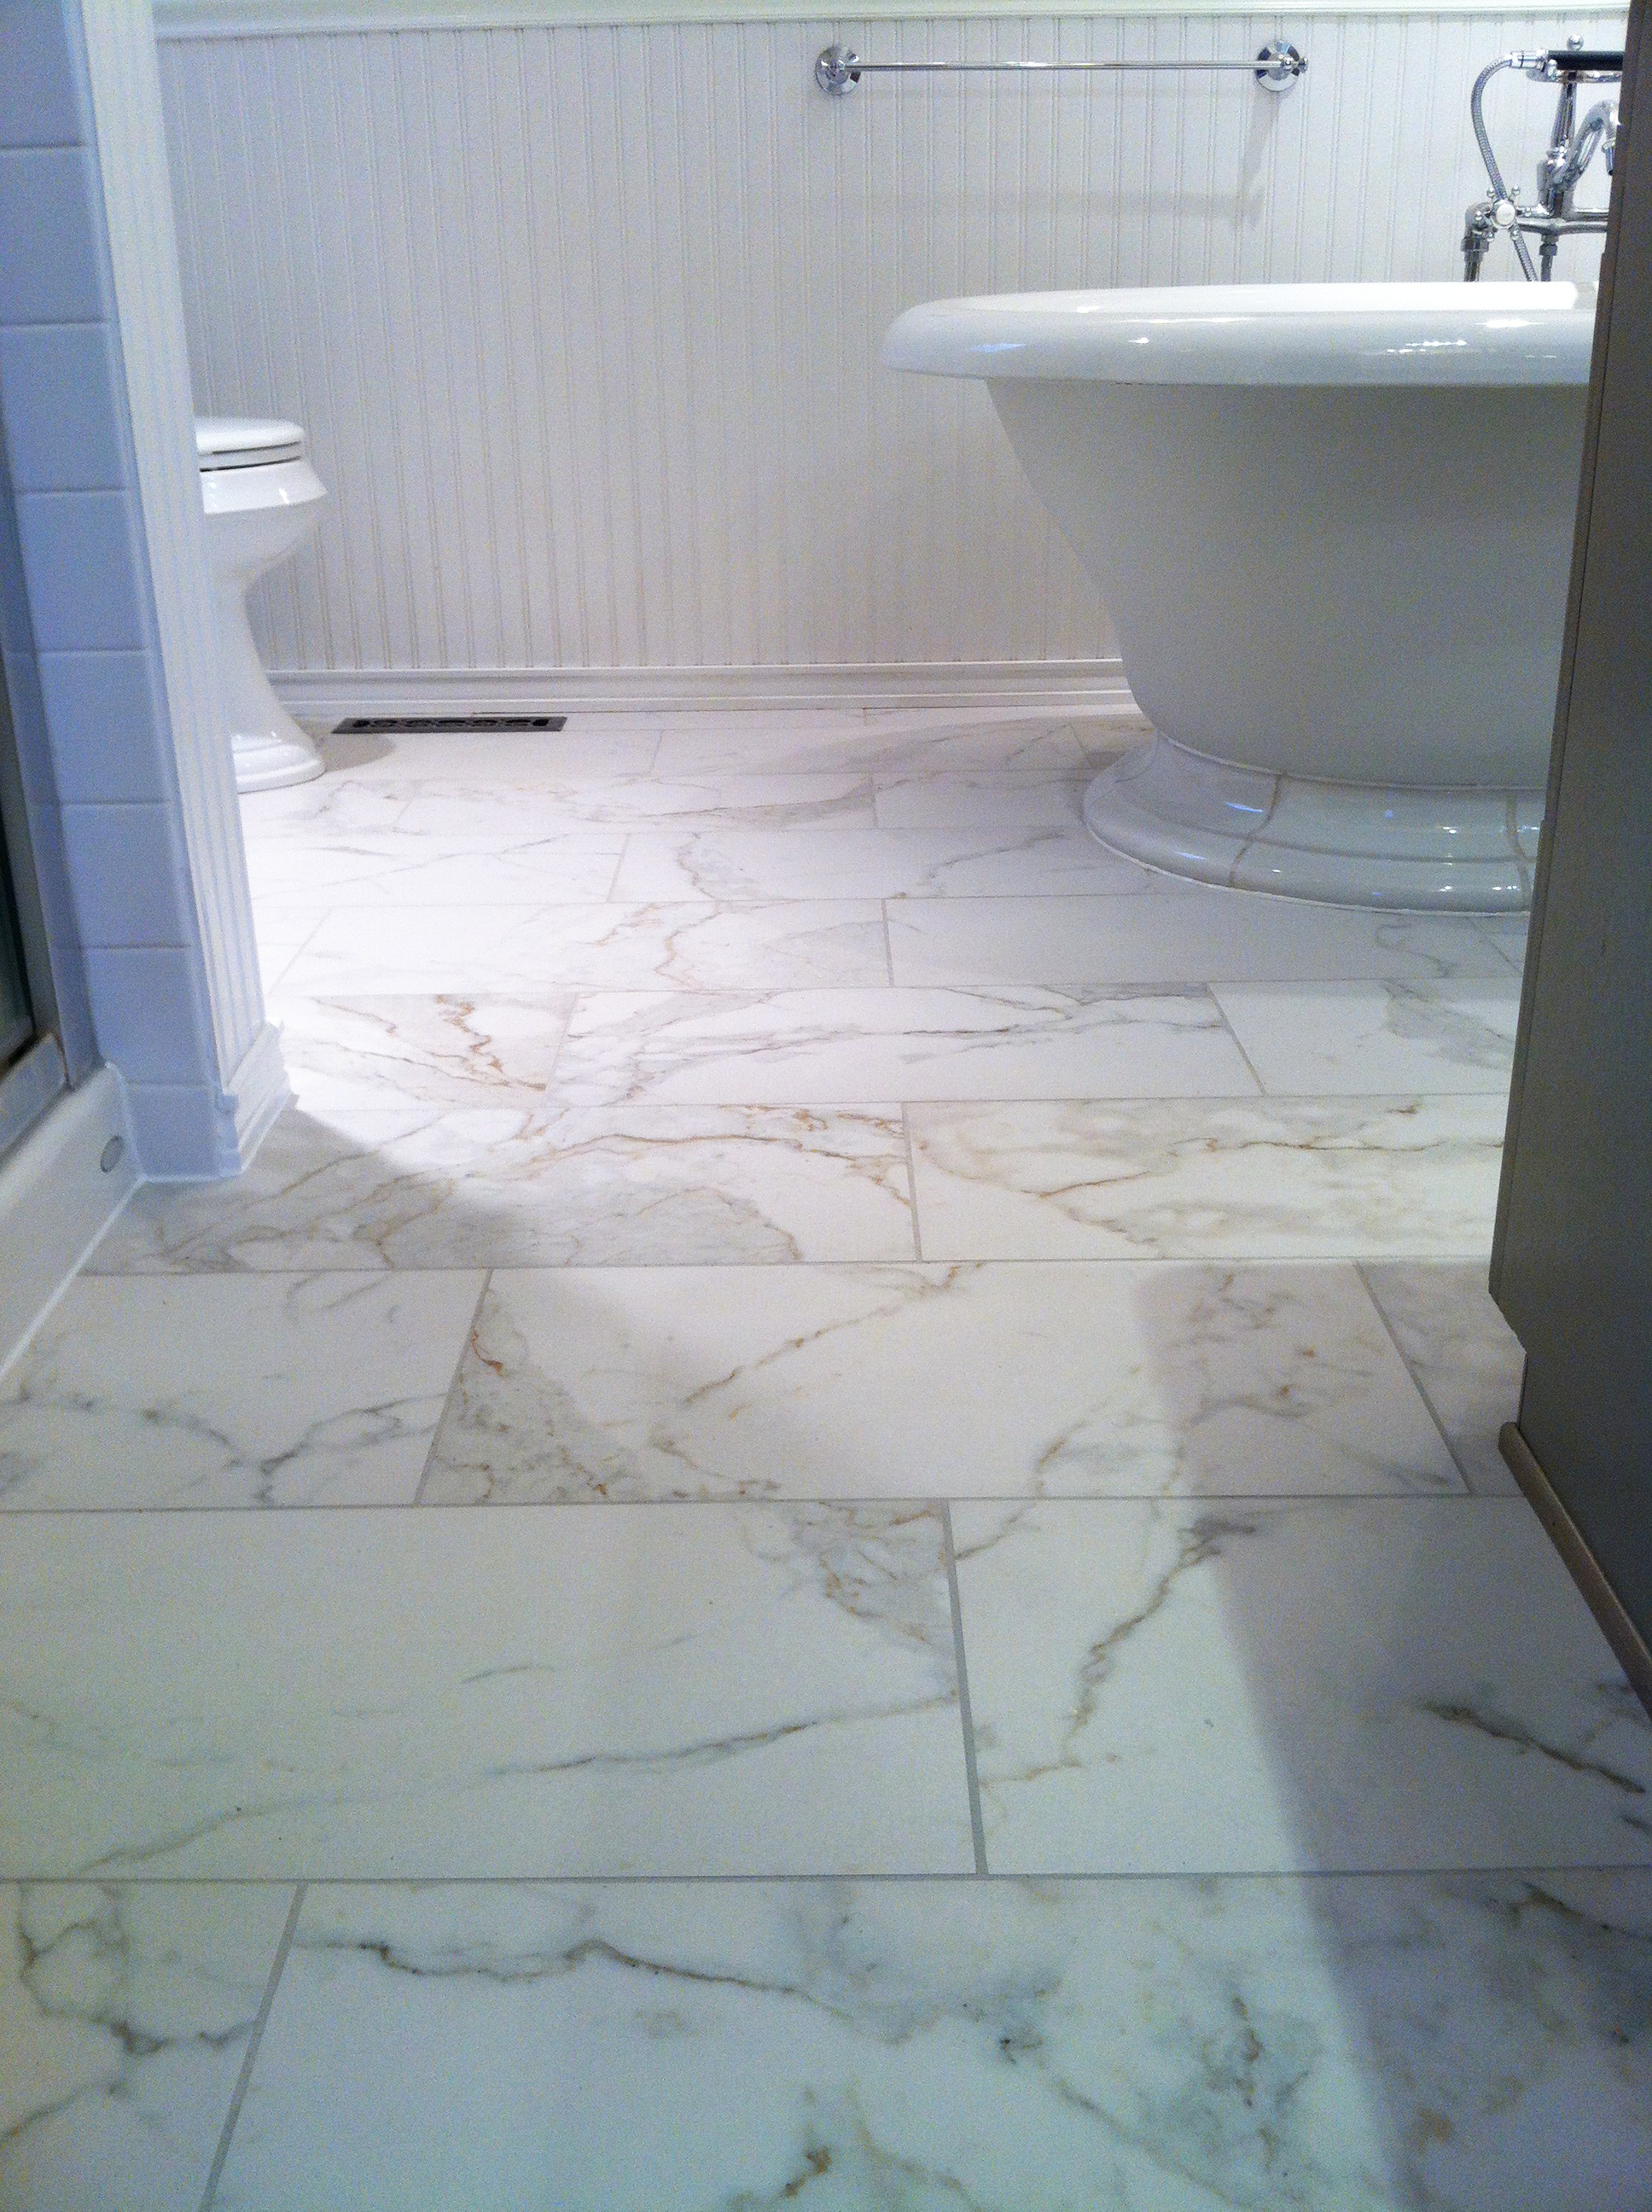 Bathroom tile installation mn touchdown tile - Home depot bathroom tile installation cost ...